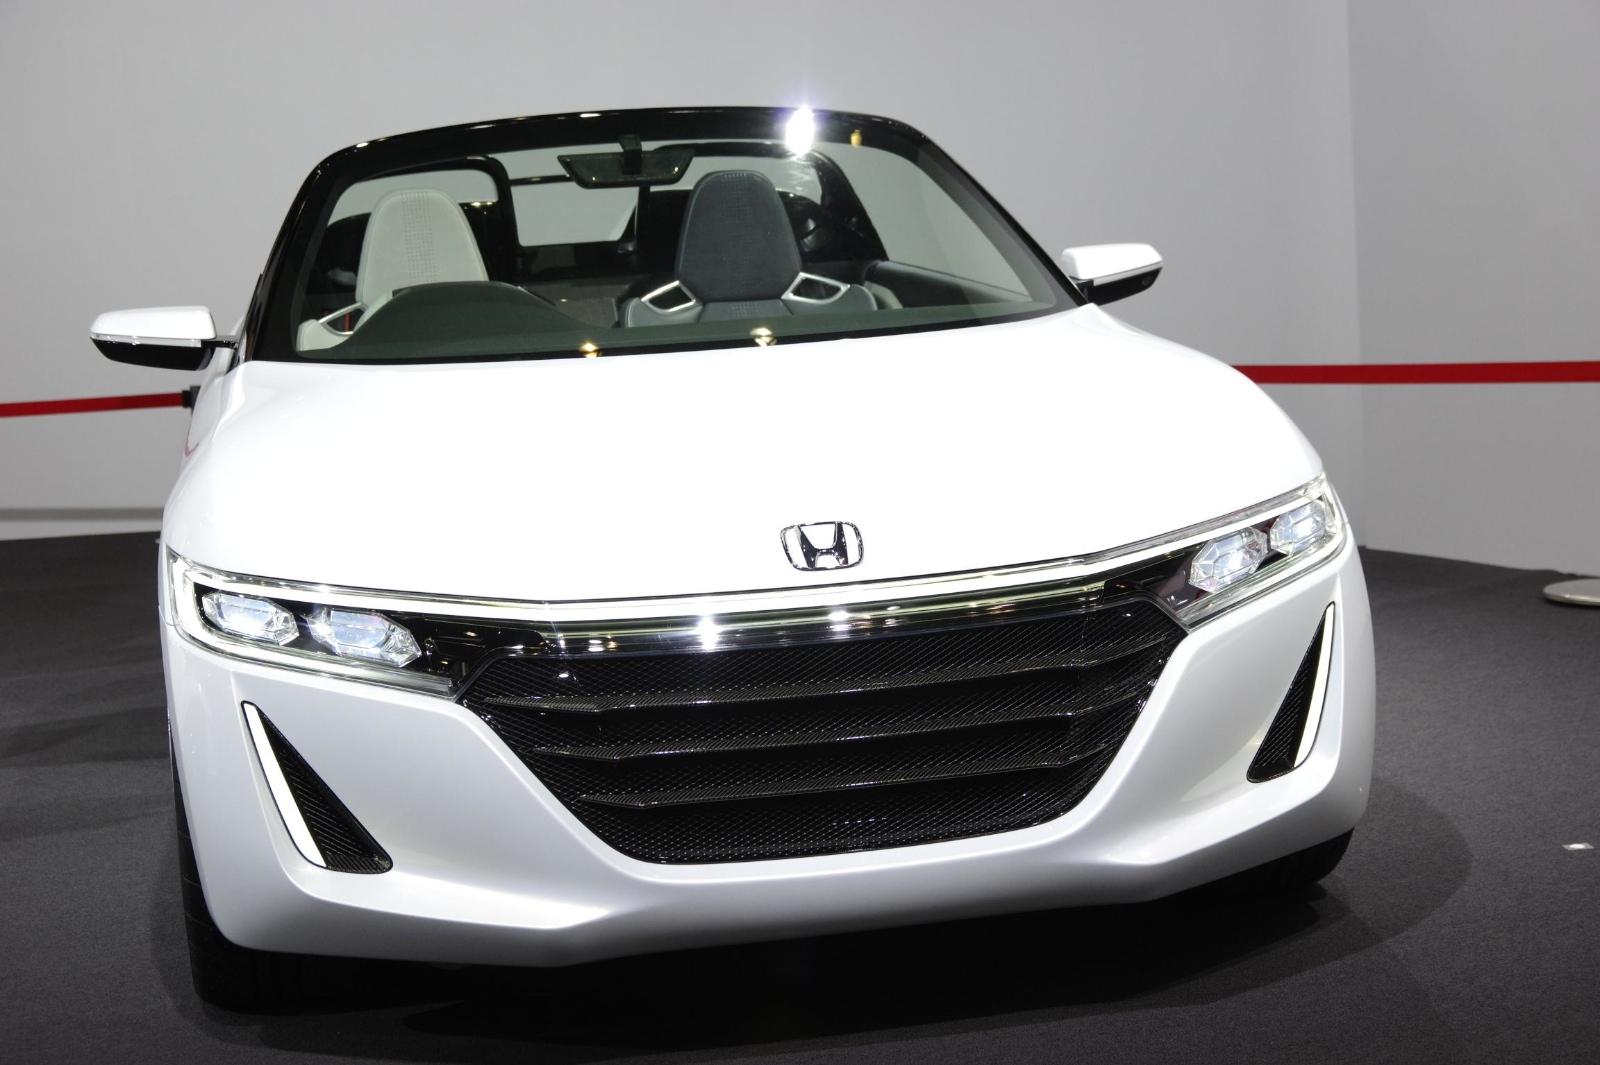 shrunken nsx honda s660 kei sportscar coming in 2015 autoevolution. Black Bedroom Furniture Sets. Home Design Ideas